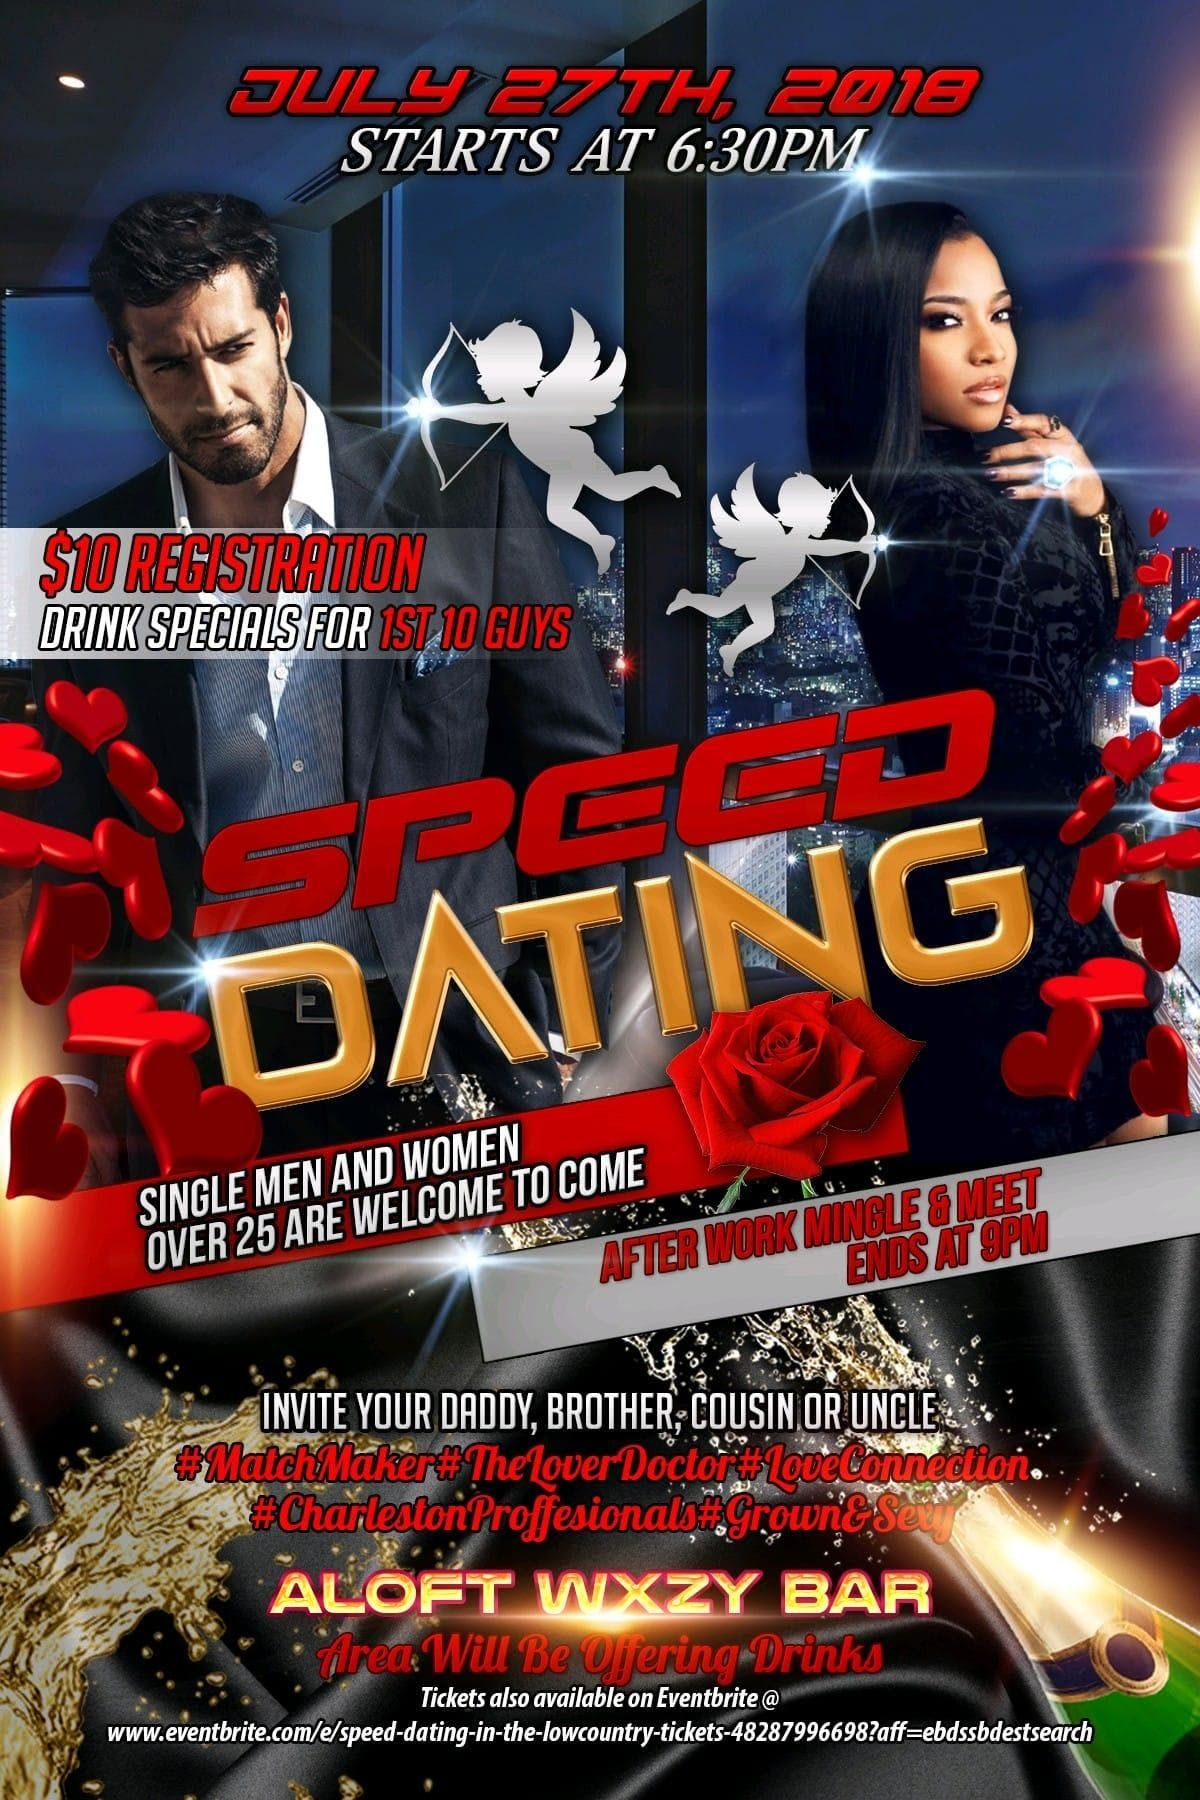 Like speed dating a cousin